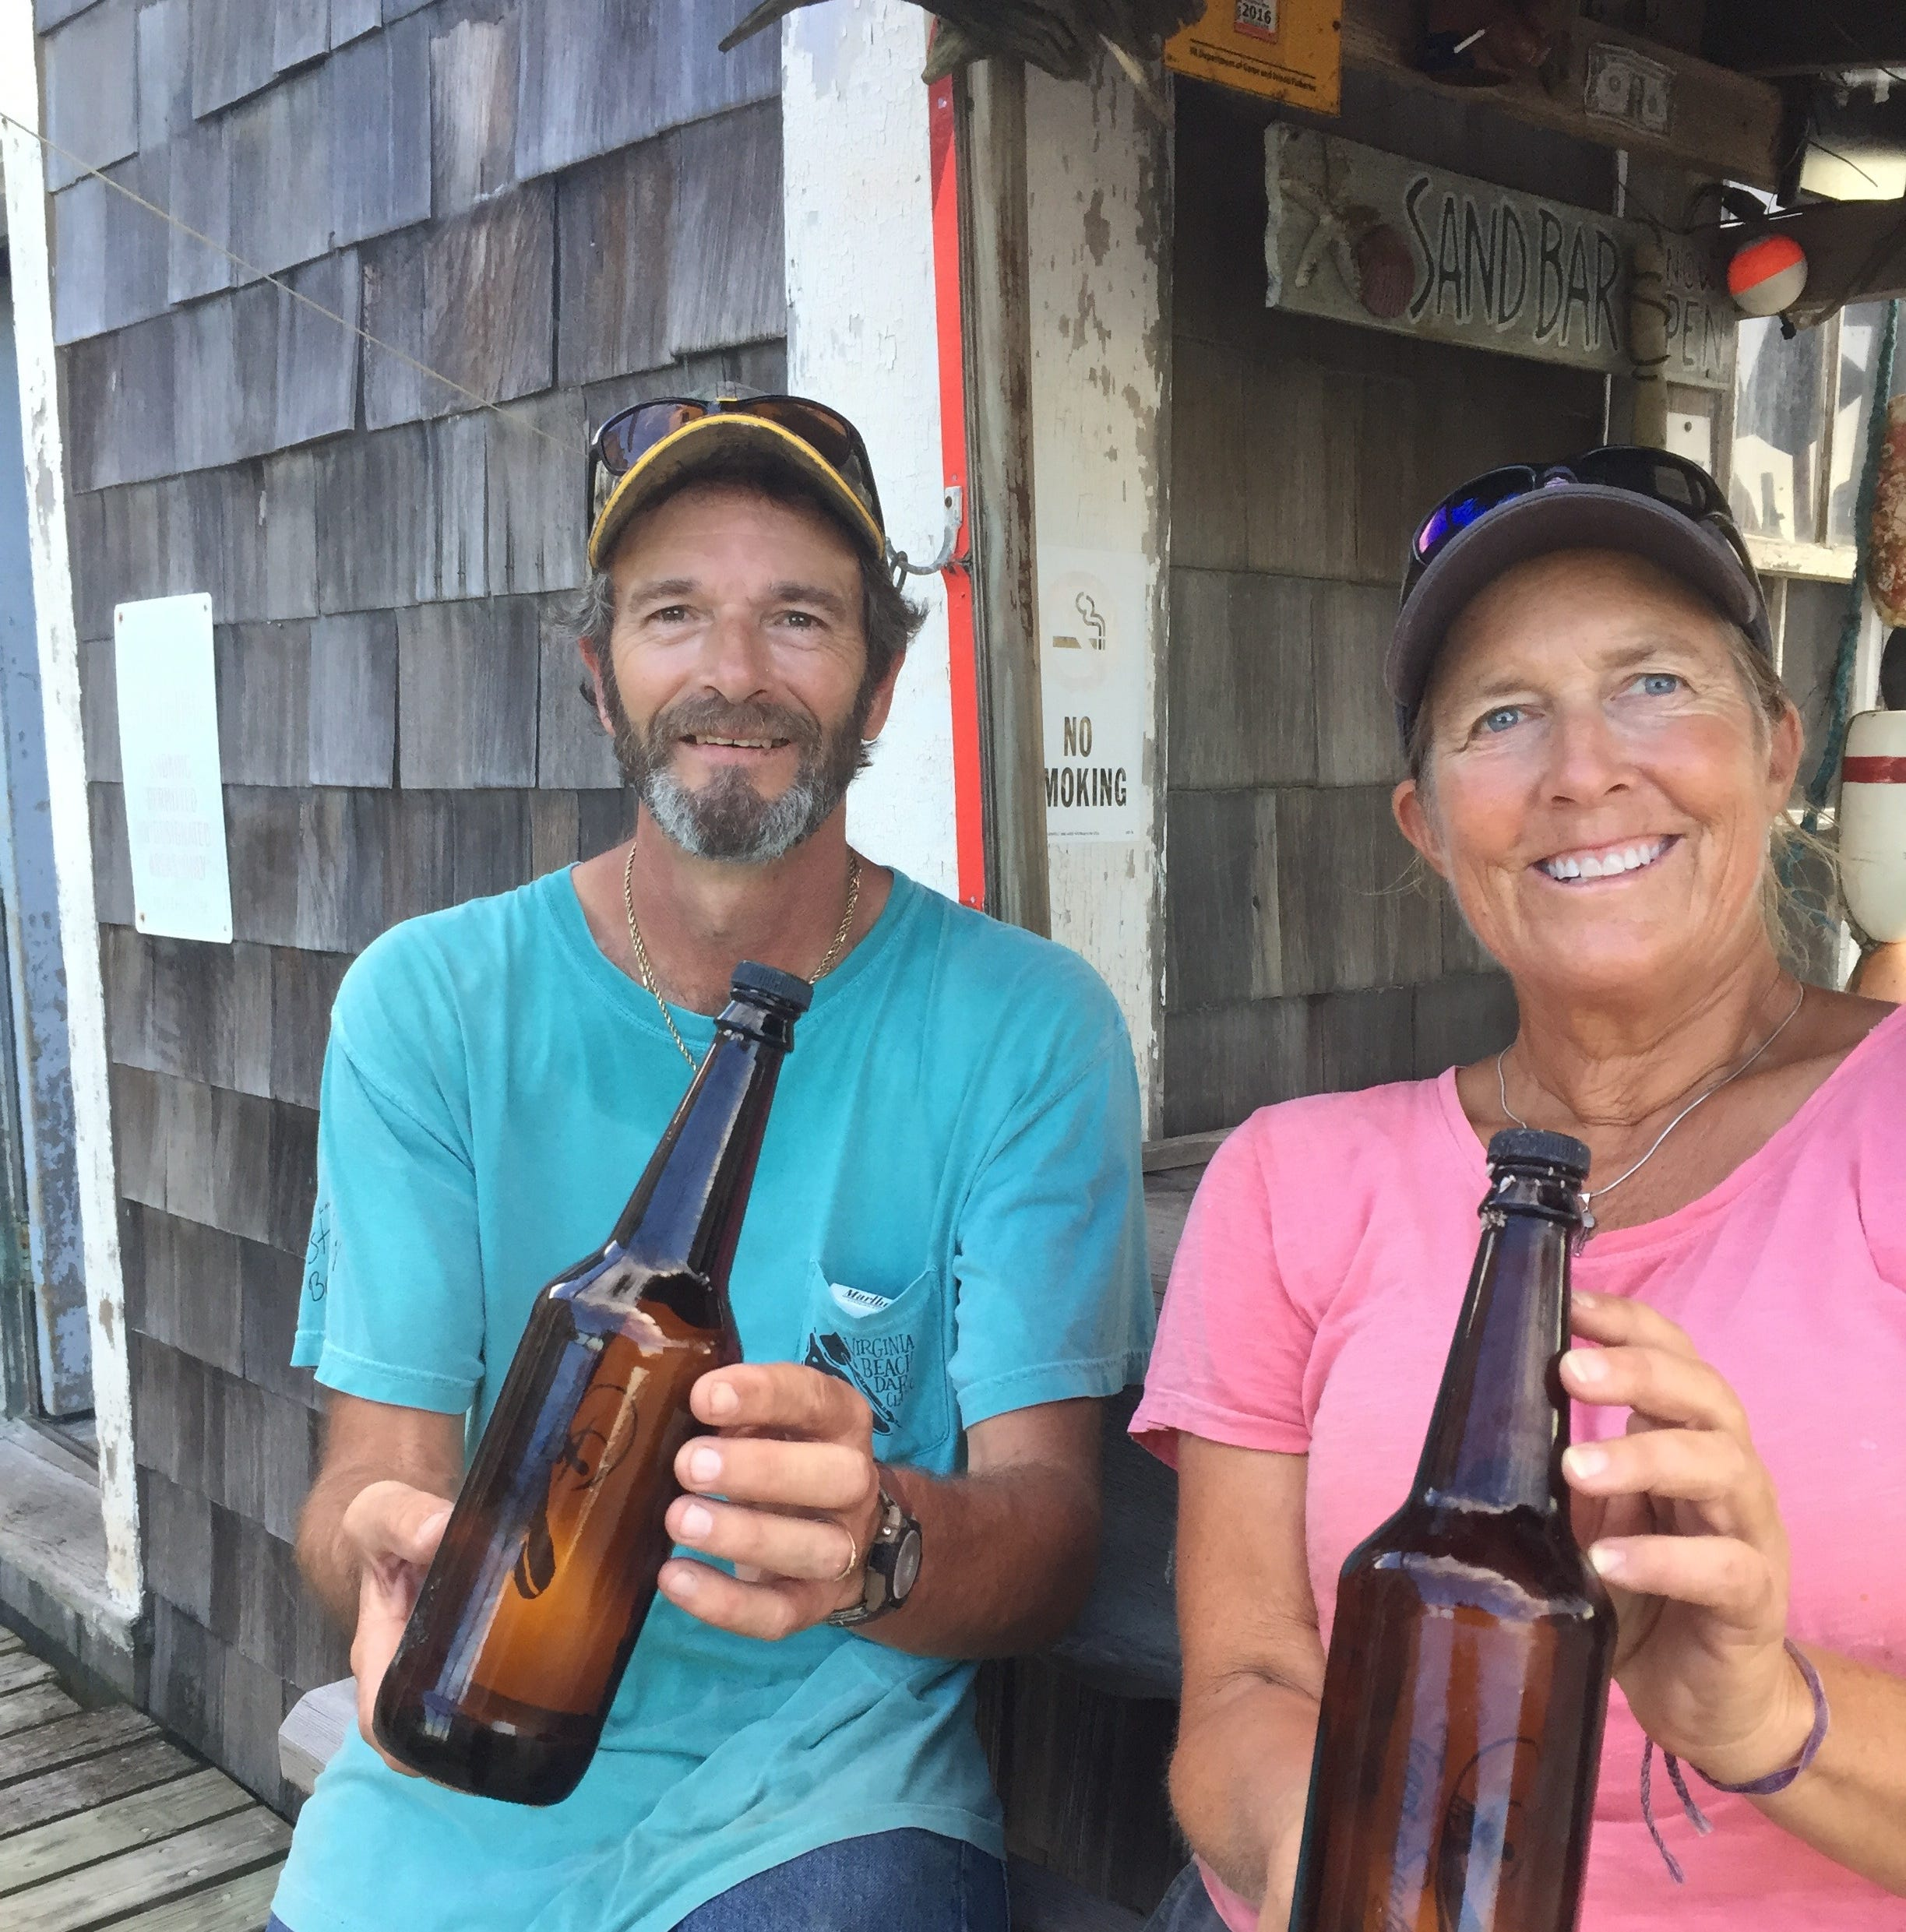 Message in a bottle memorializes quadriplegic surfer